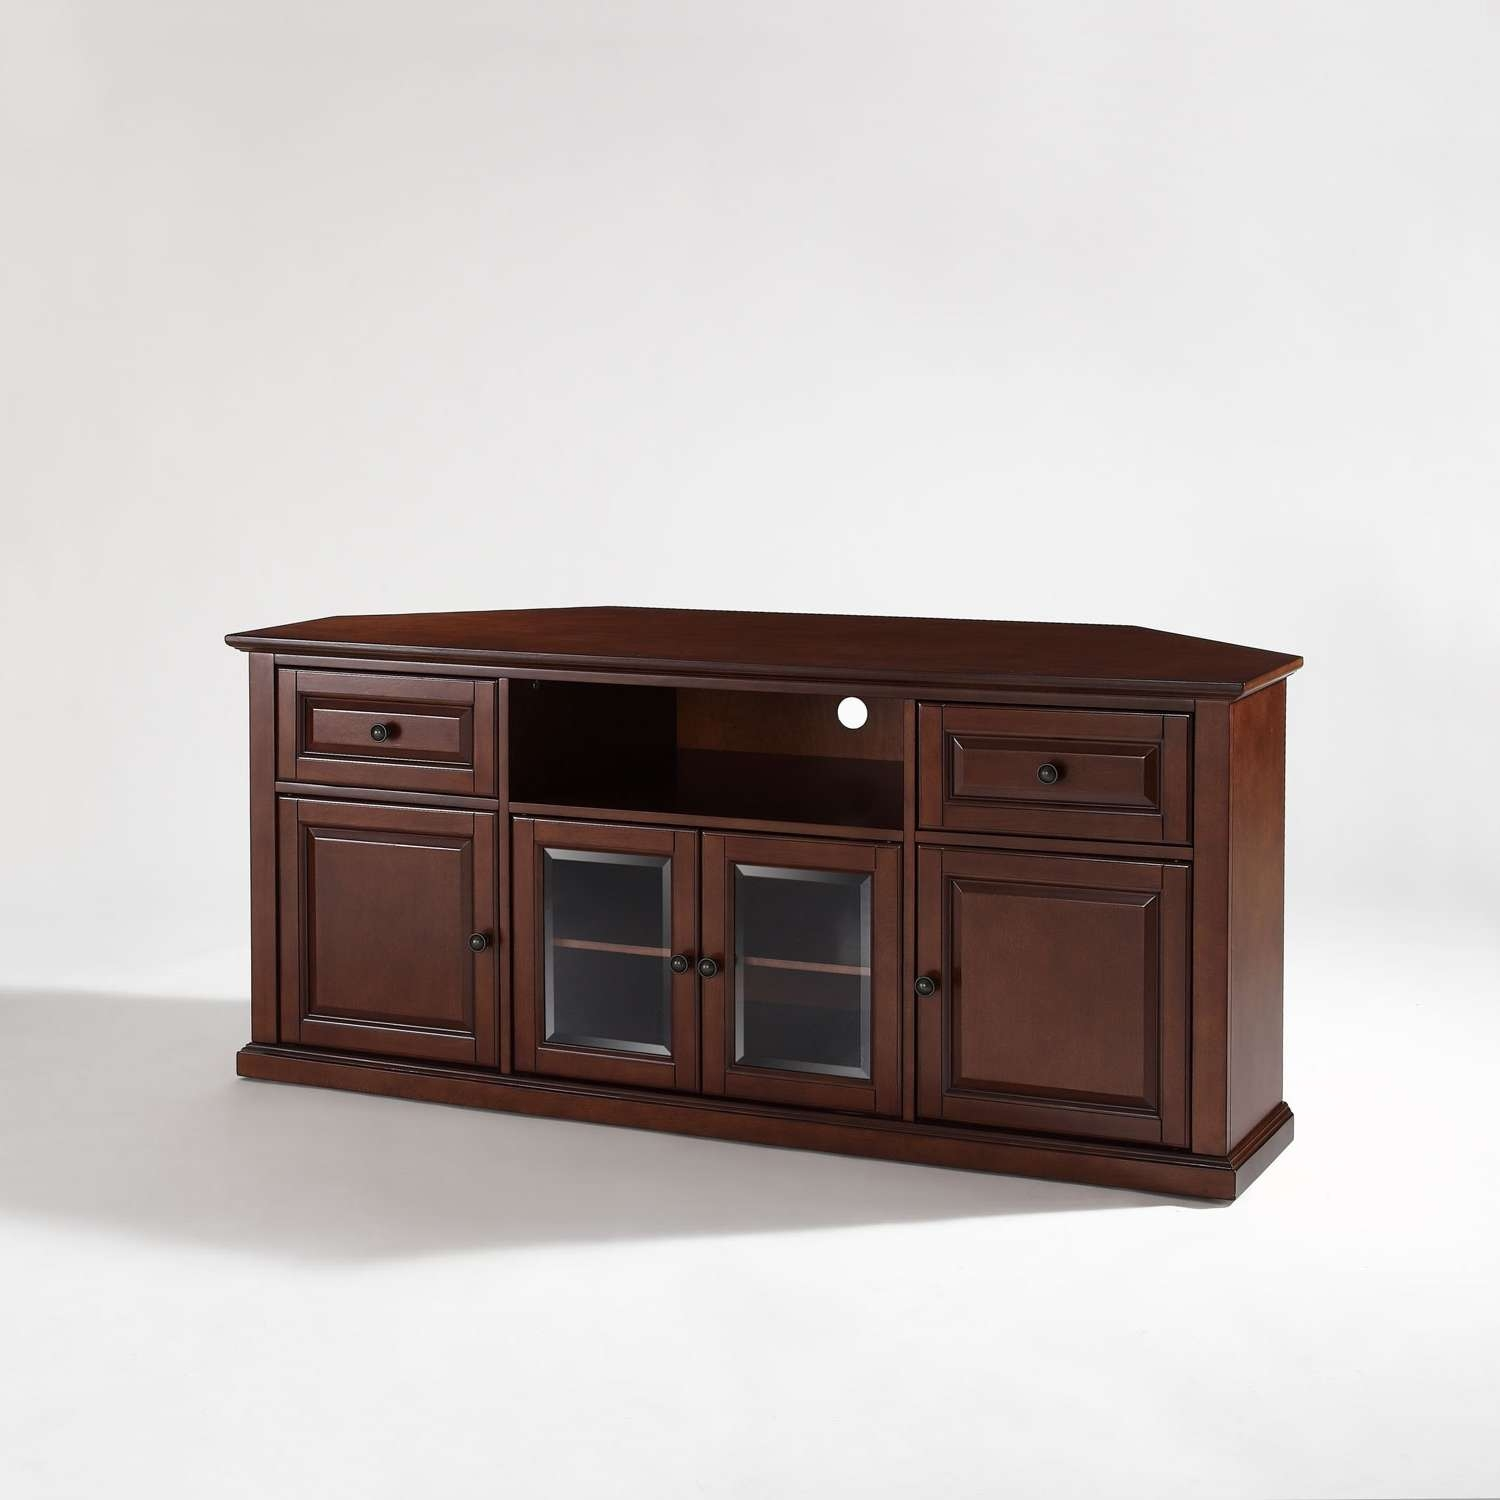 Asian Corner Tv Cabinet | Cabinet Ideas Regarding Asian Tv Cabinets (View 2 of 20)